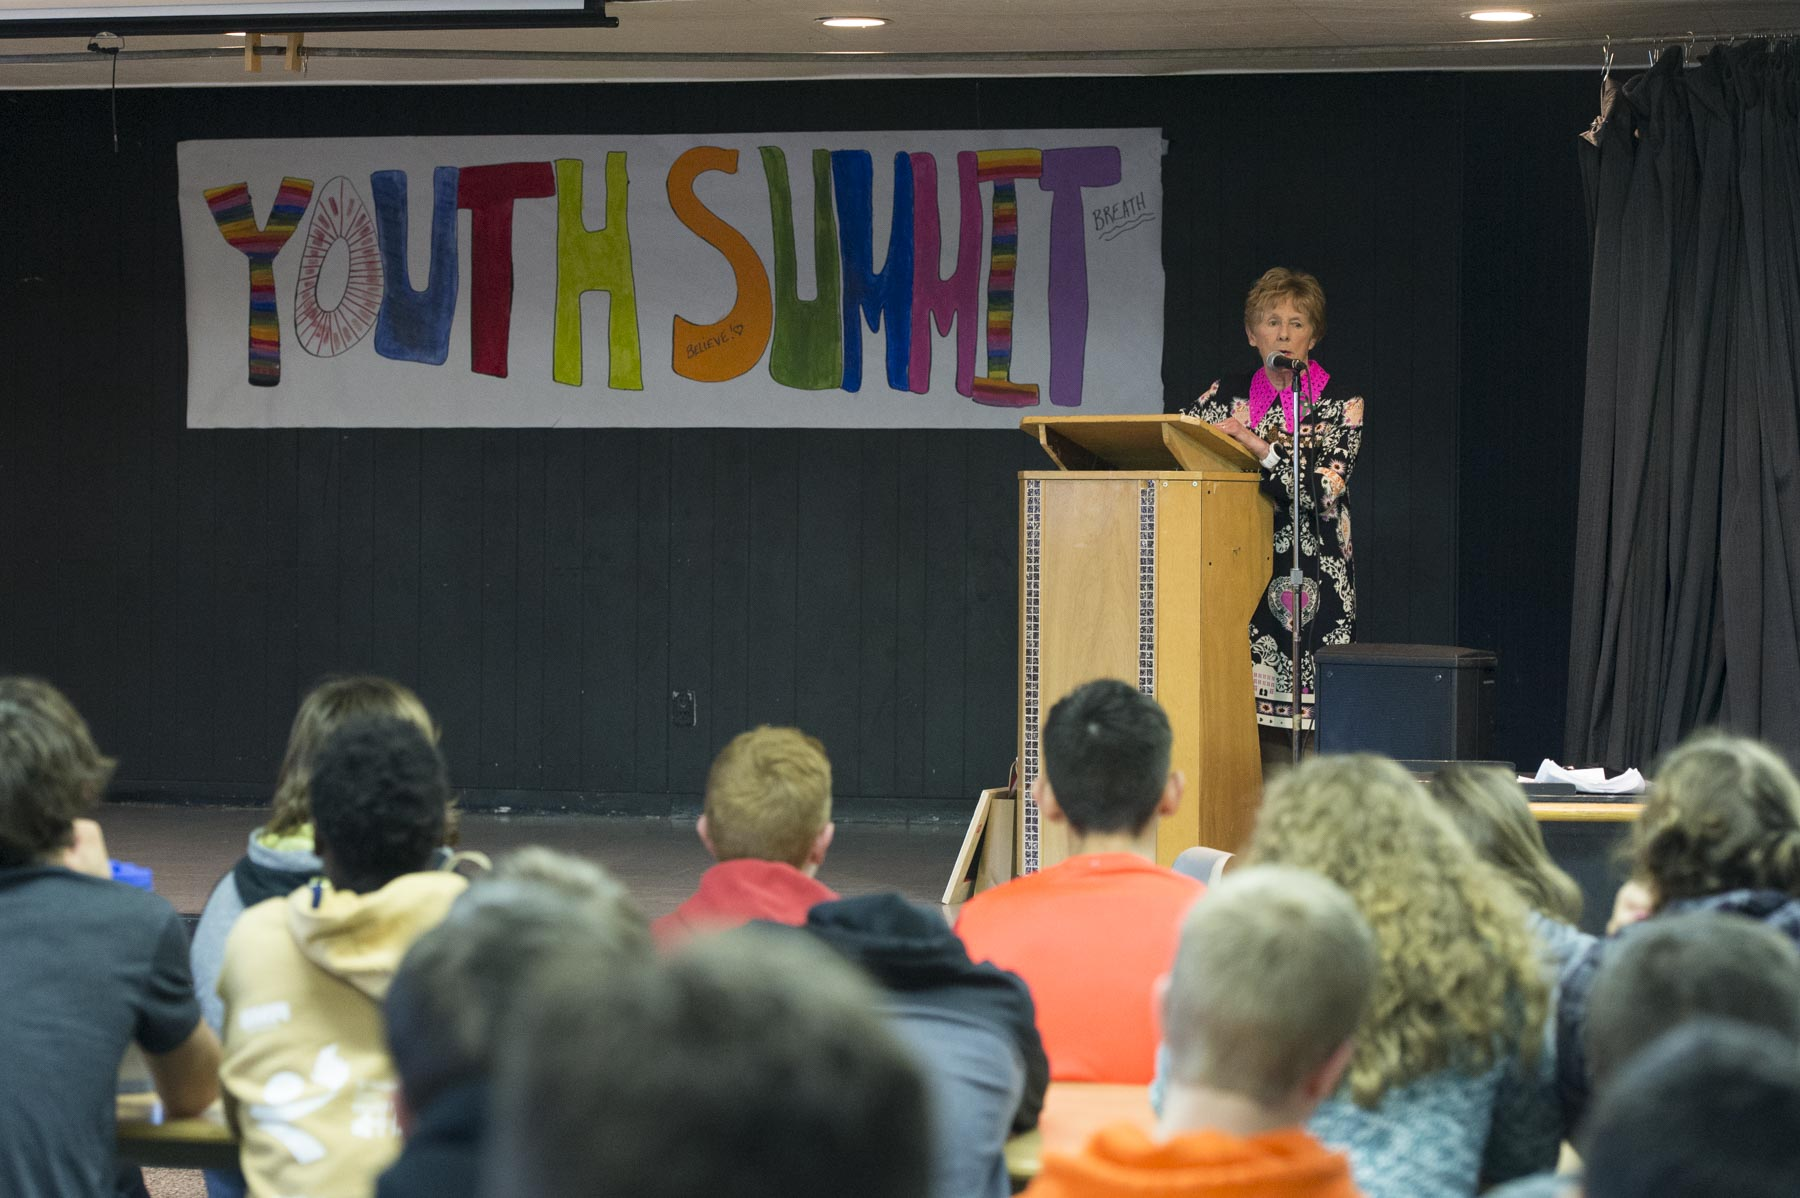 In her remarks Her Excellency spoke about the importance of mental health services for youth in the community.